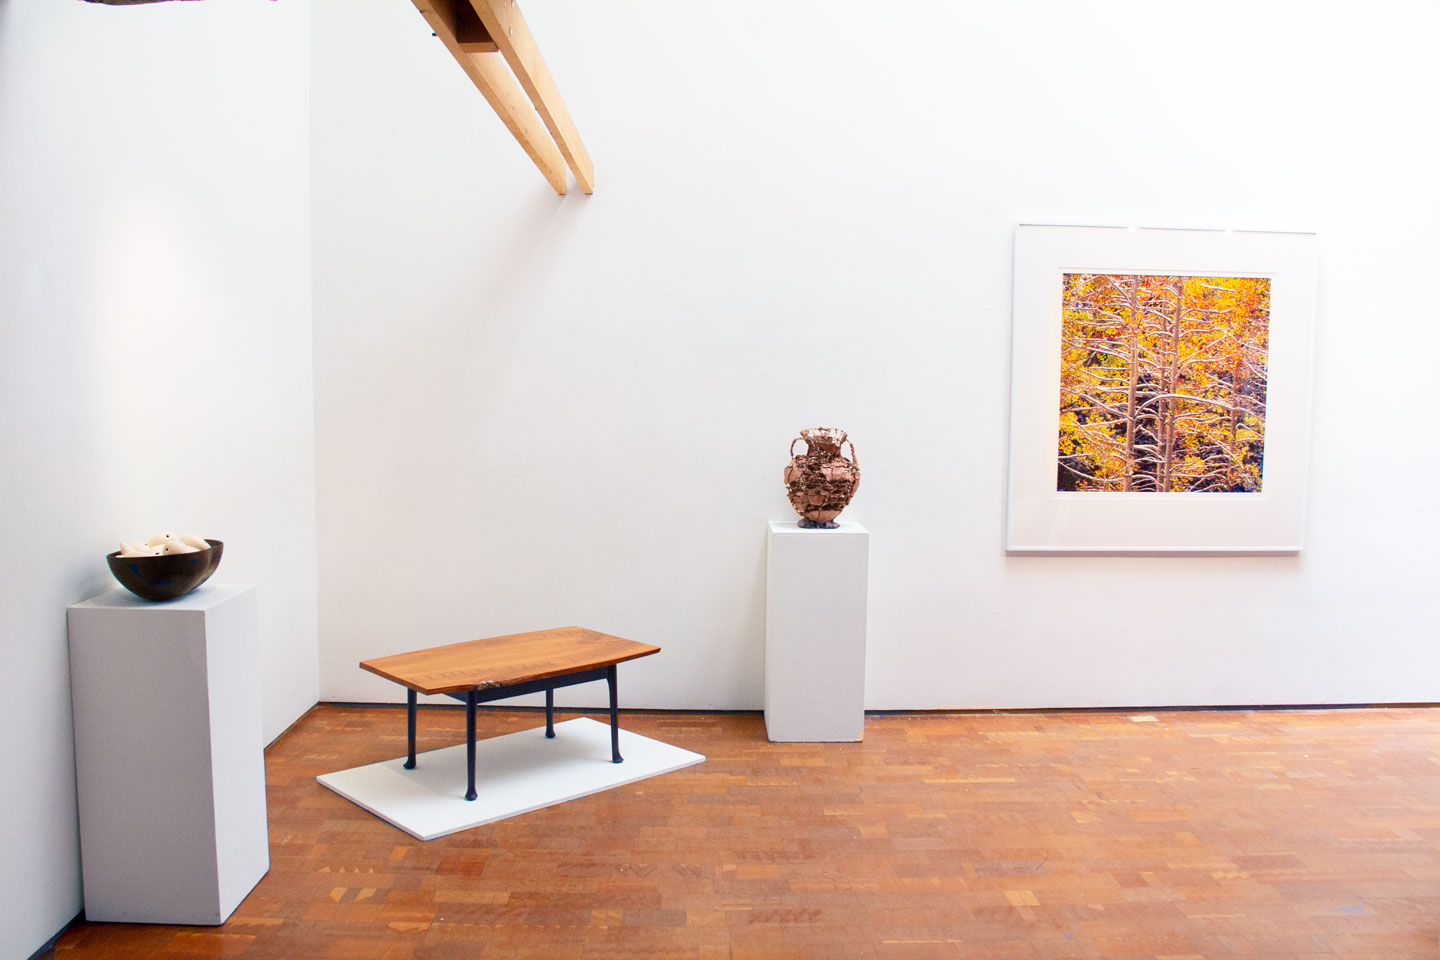 an exhibition at the Patton-Malott Gallery